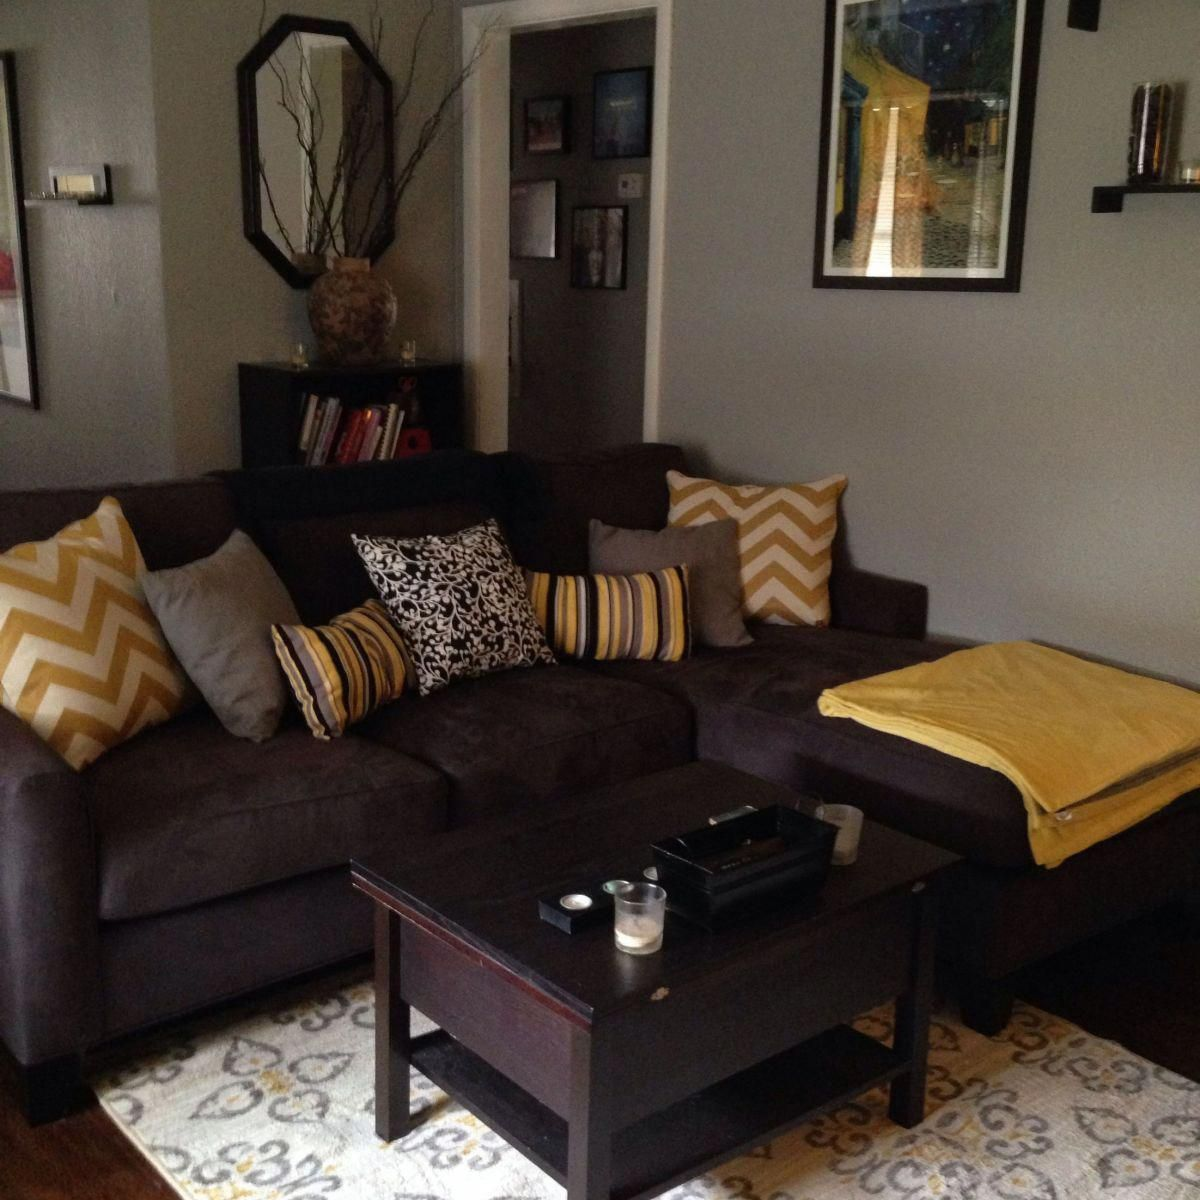 living room colors with brown couch ideas 6 on small laundry room paint ideas with brown furniture colors id=52907